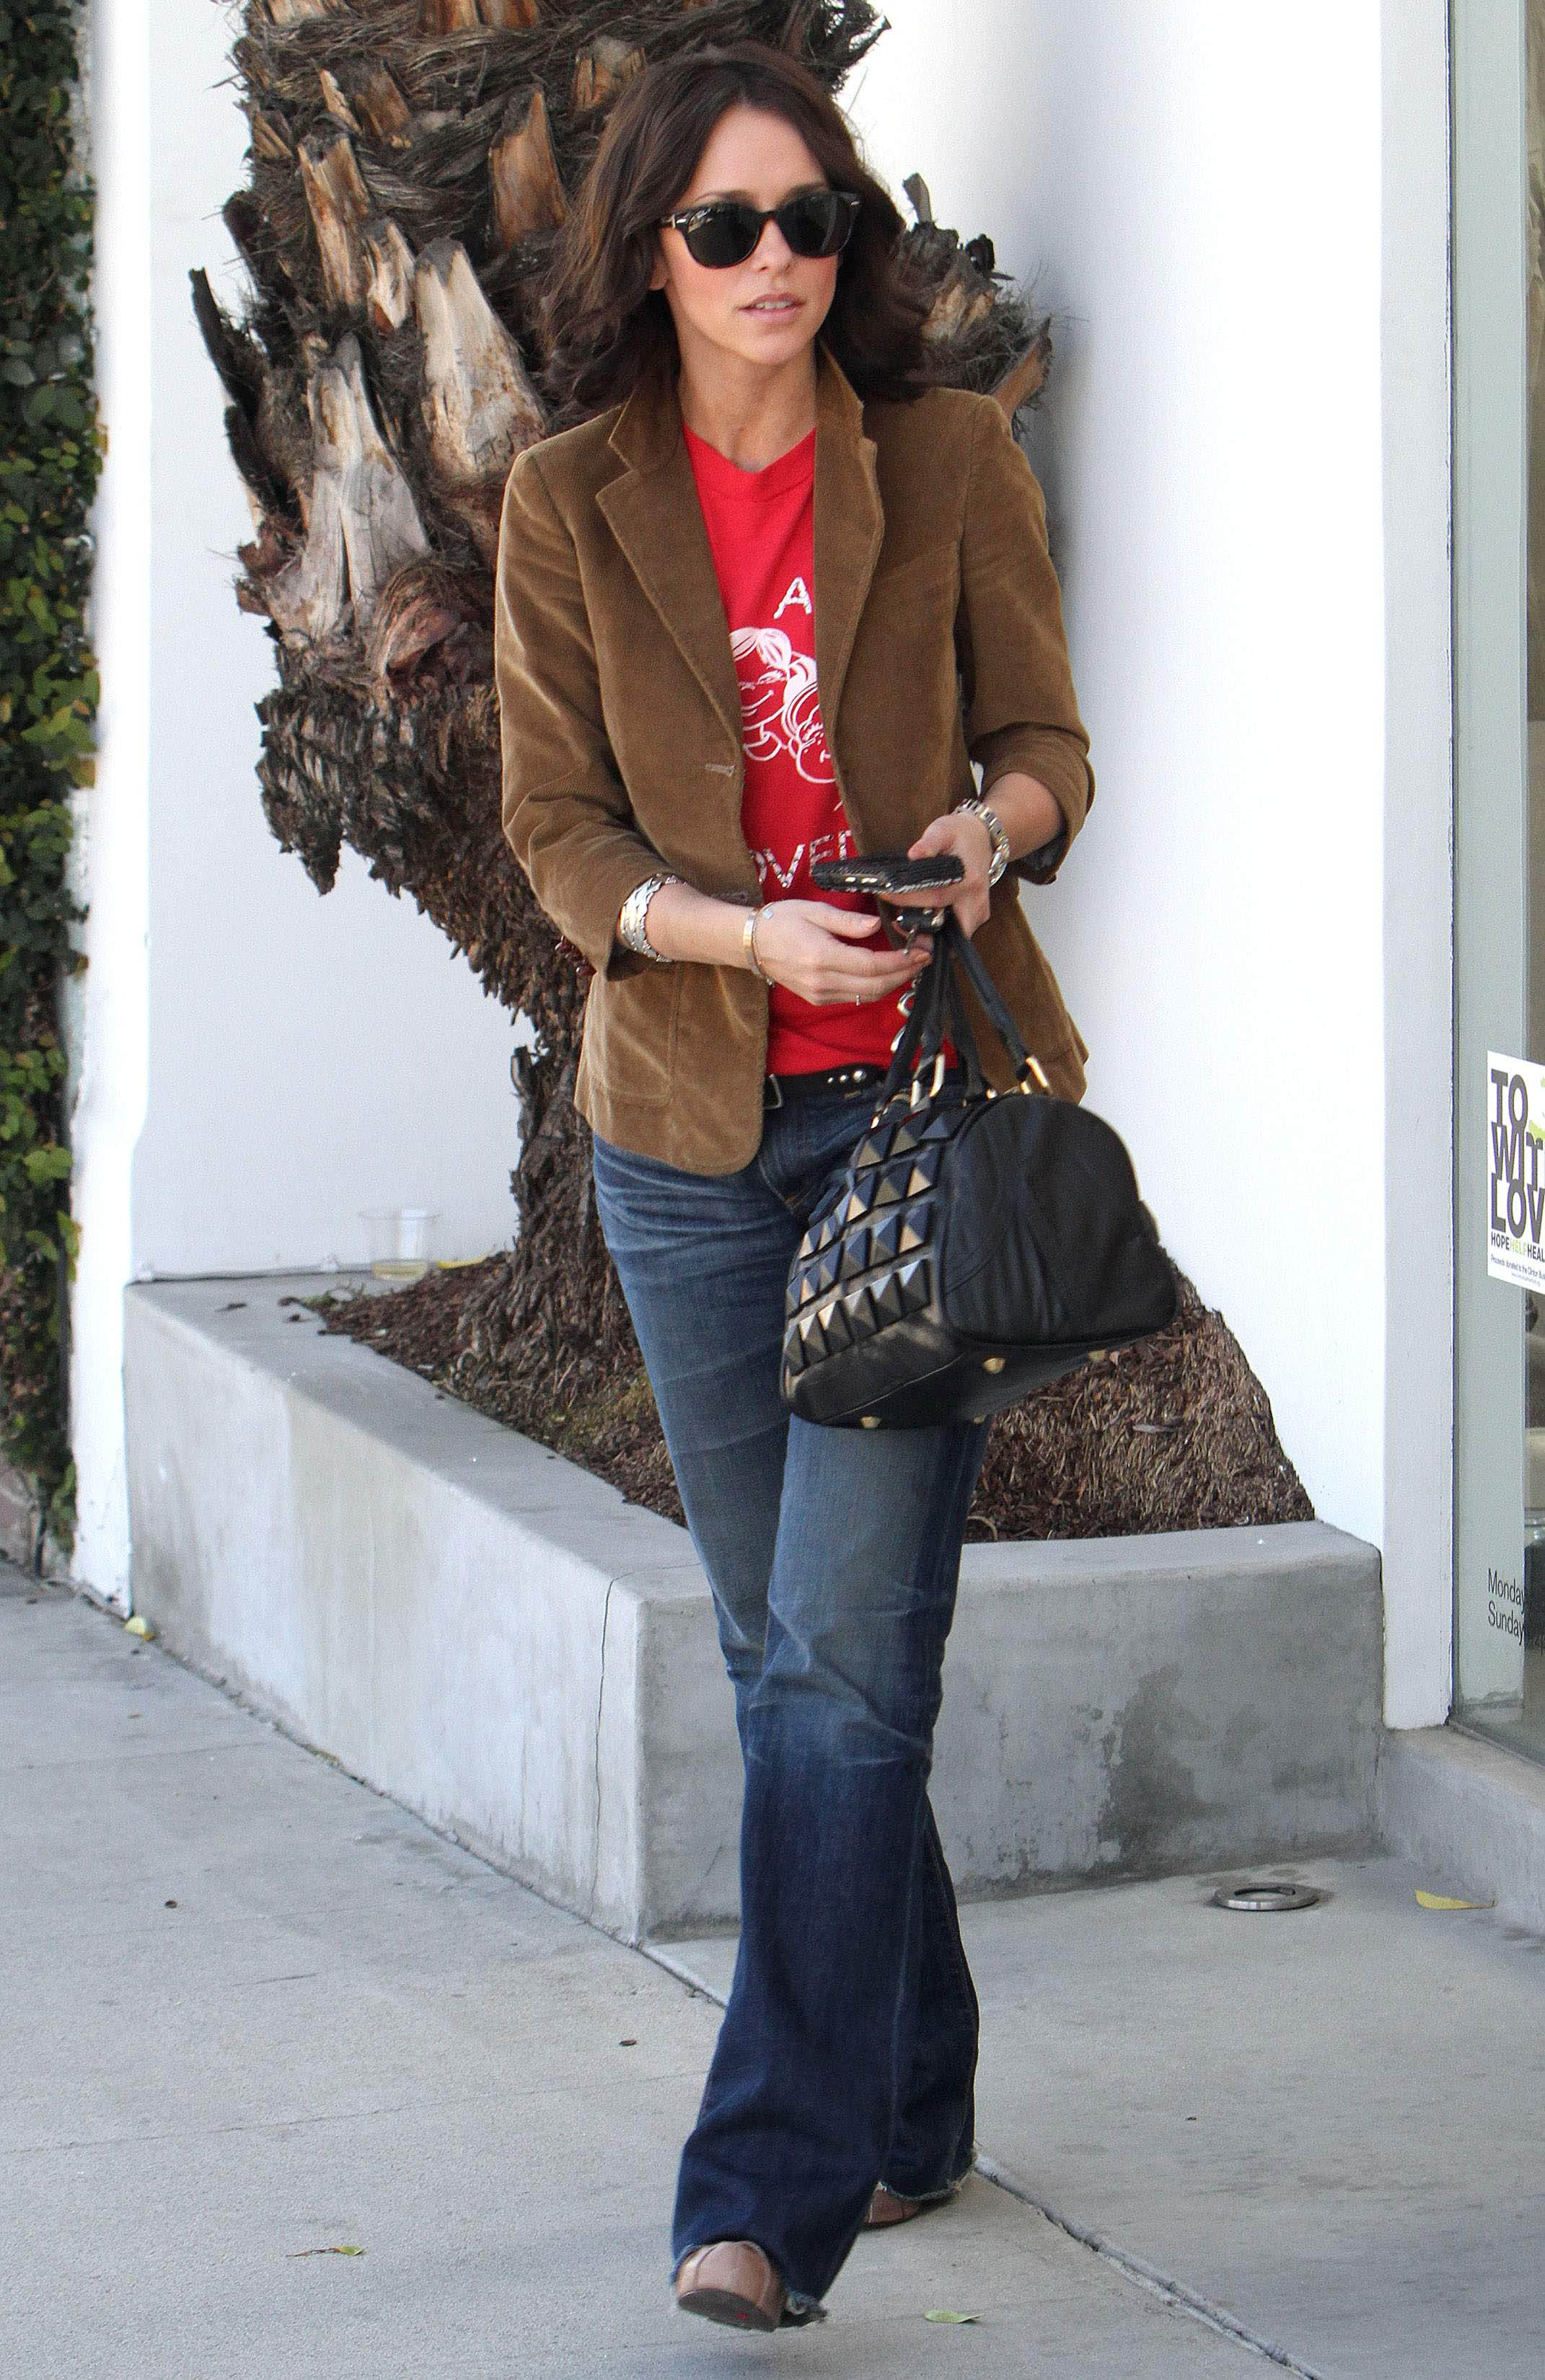 43346_JLH_Out_and_about_in_LA7_122_554lo.jpg